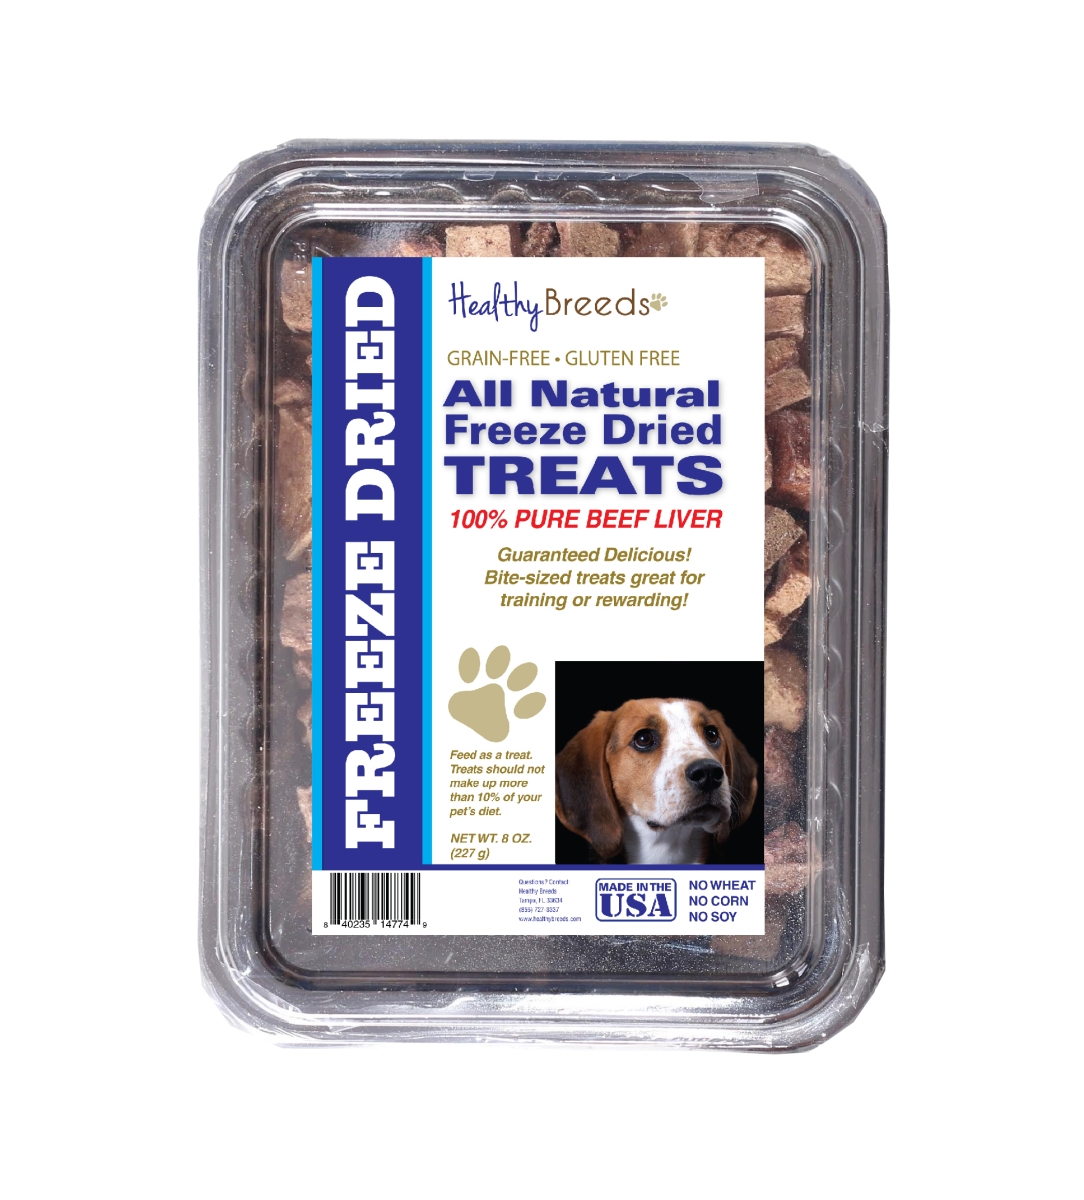 Healthy Breeds 840235147749 10 oz American English Coonhound All Natural Freeze Dried Treats Beef Liver